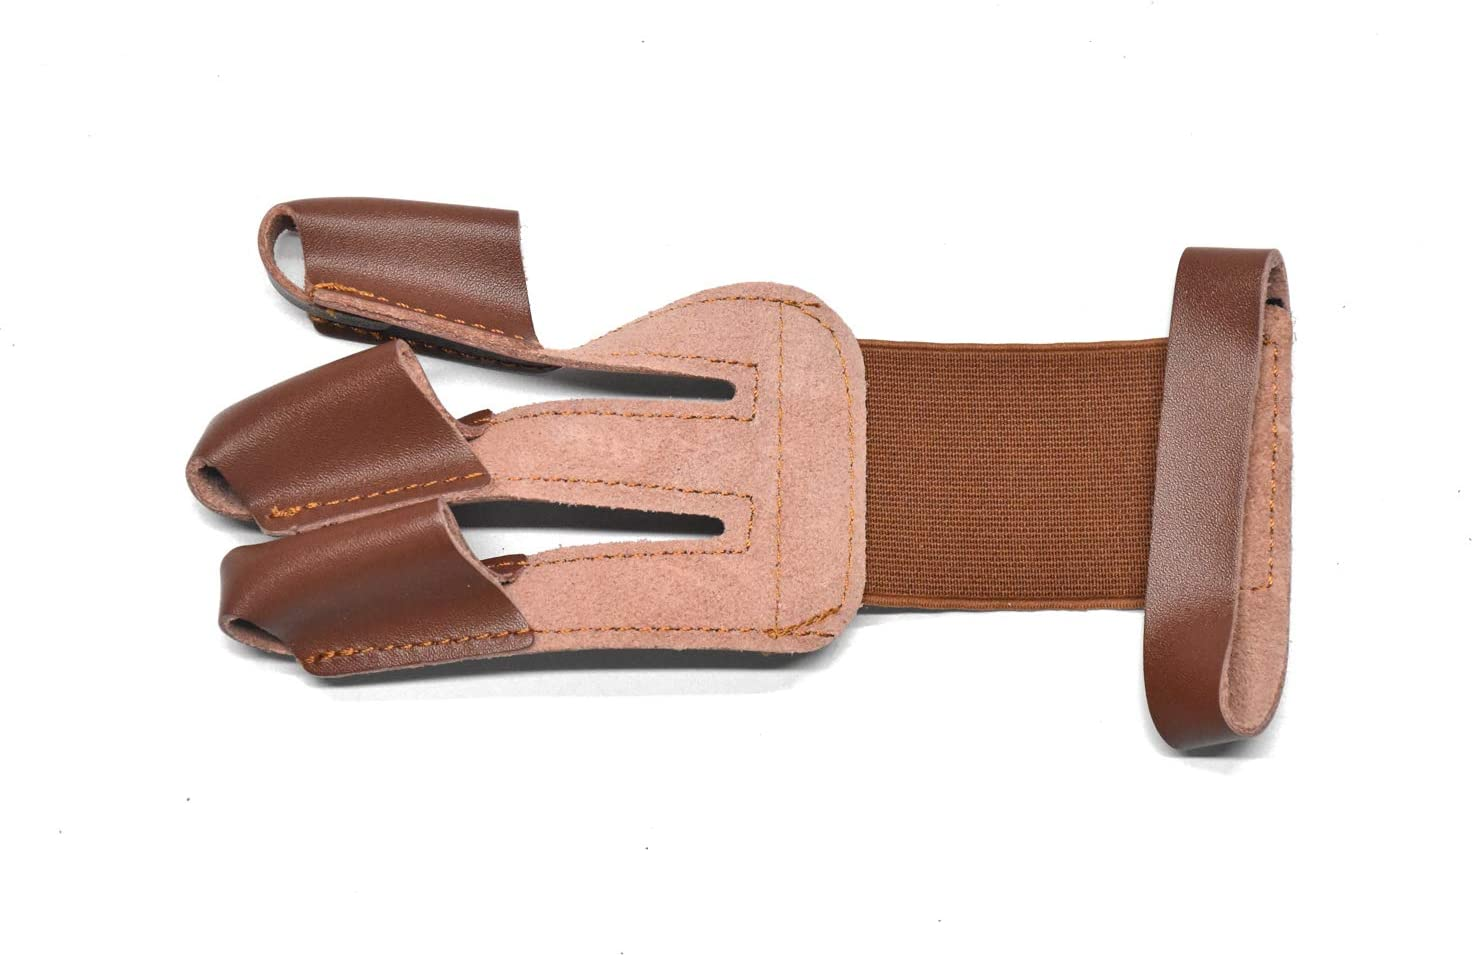 Windfulogo Leather Archery Hand Glove Finger Tab Hand Guard Protector Long Bow for Right Hand 3 Fingers Brown : Sports & Outdoors